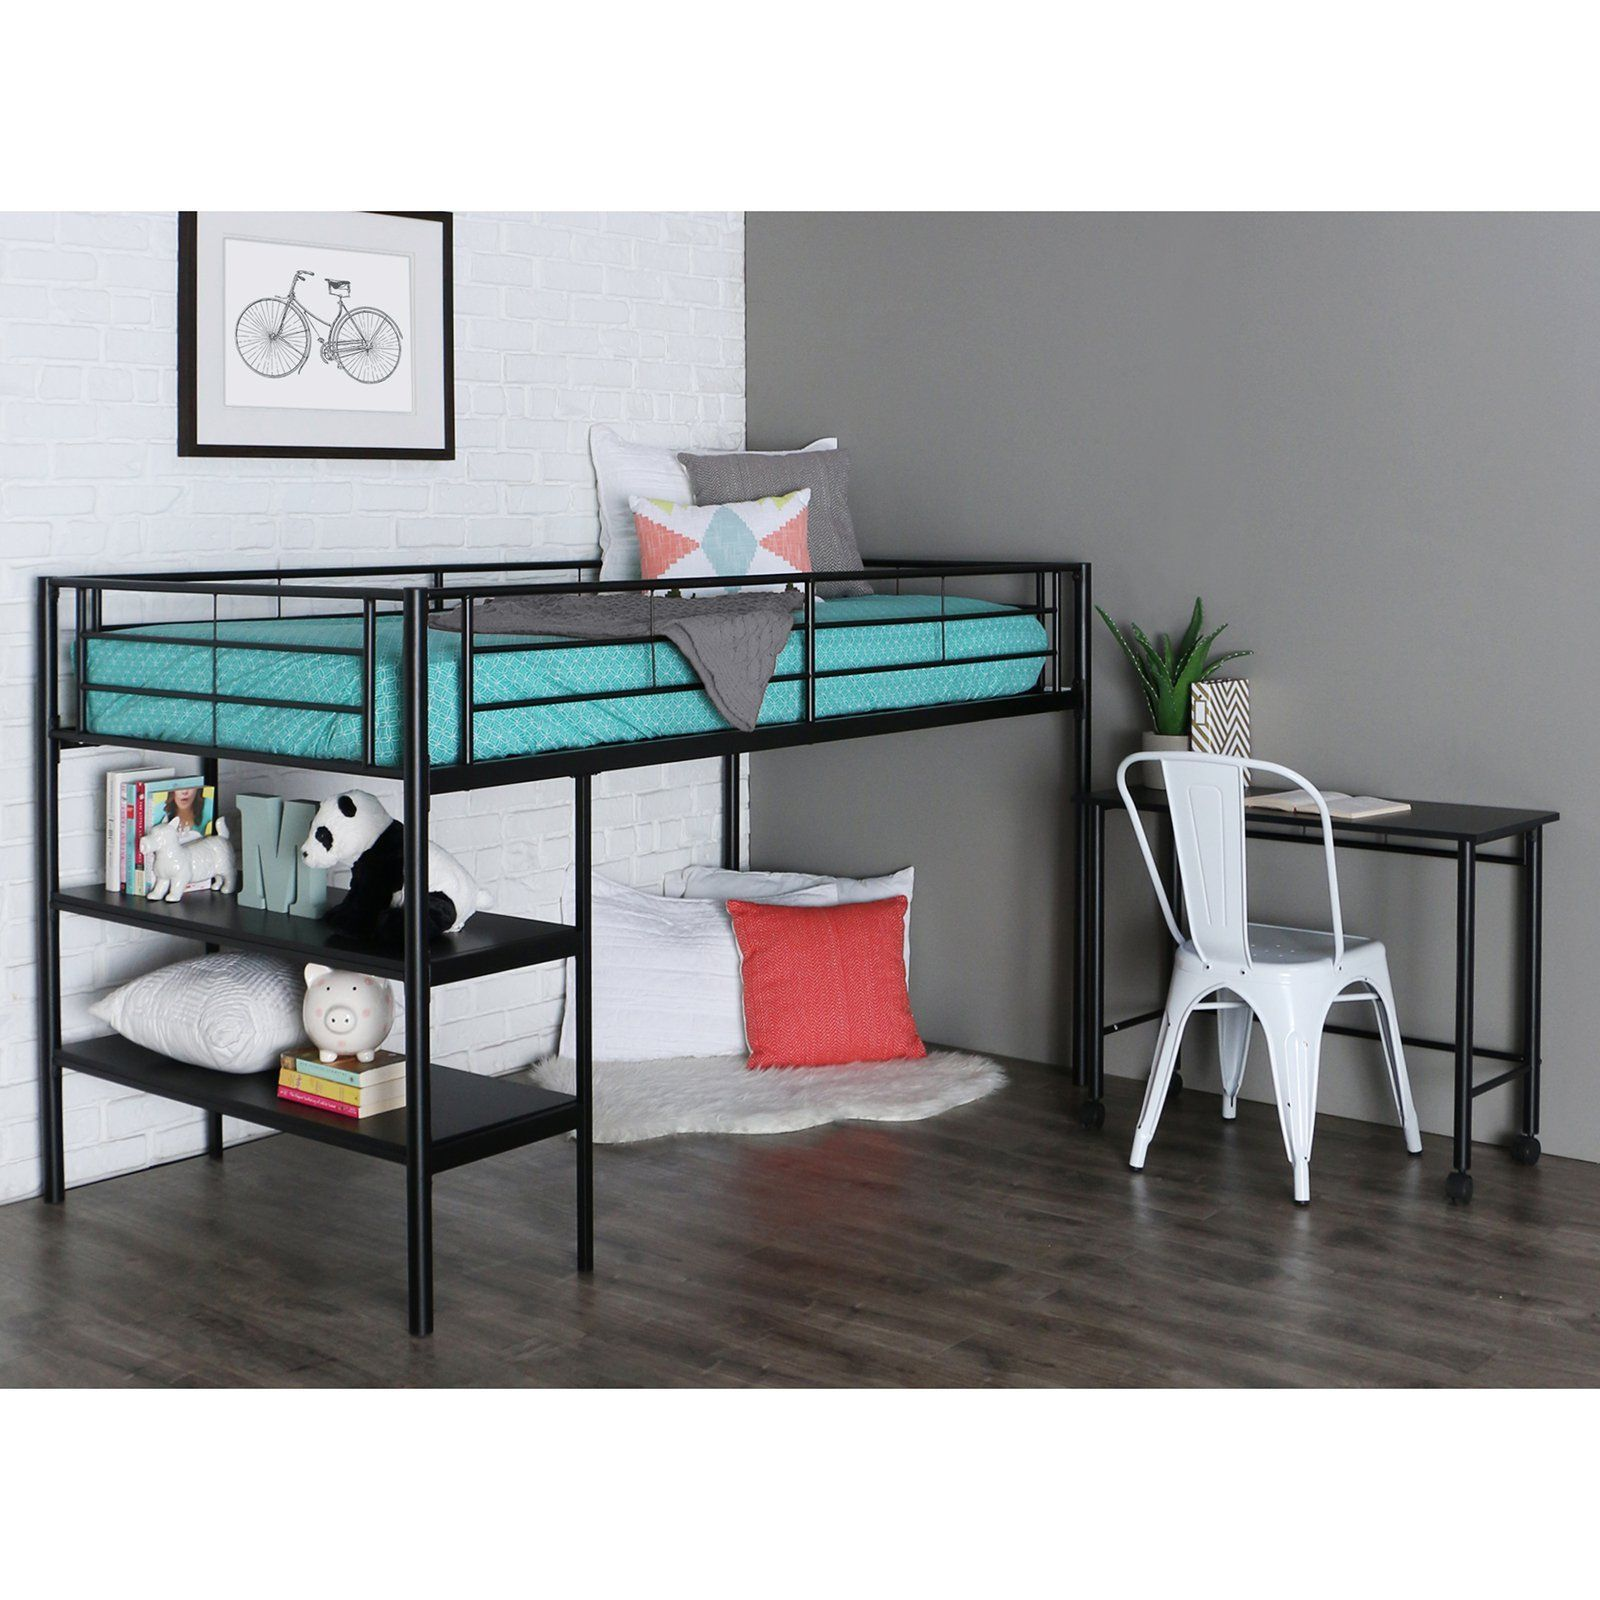 the loft bed has two shelves integrated into the frame and provides additional storage space underneath a matching desk is included